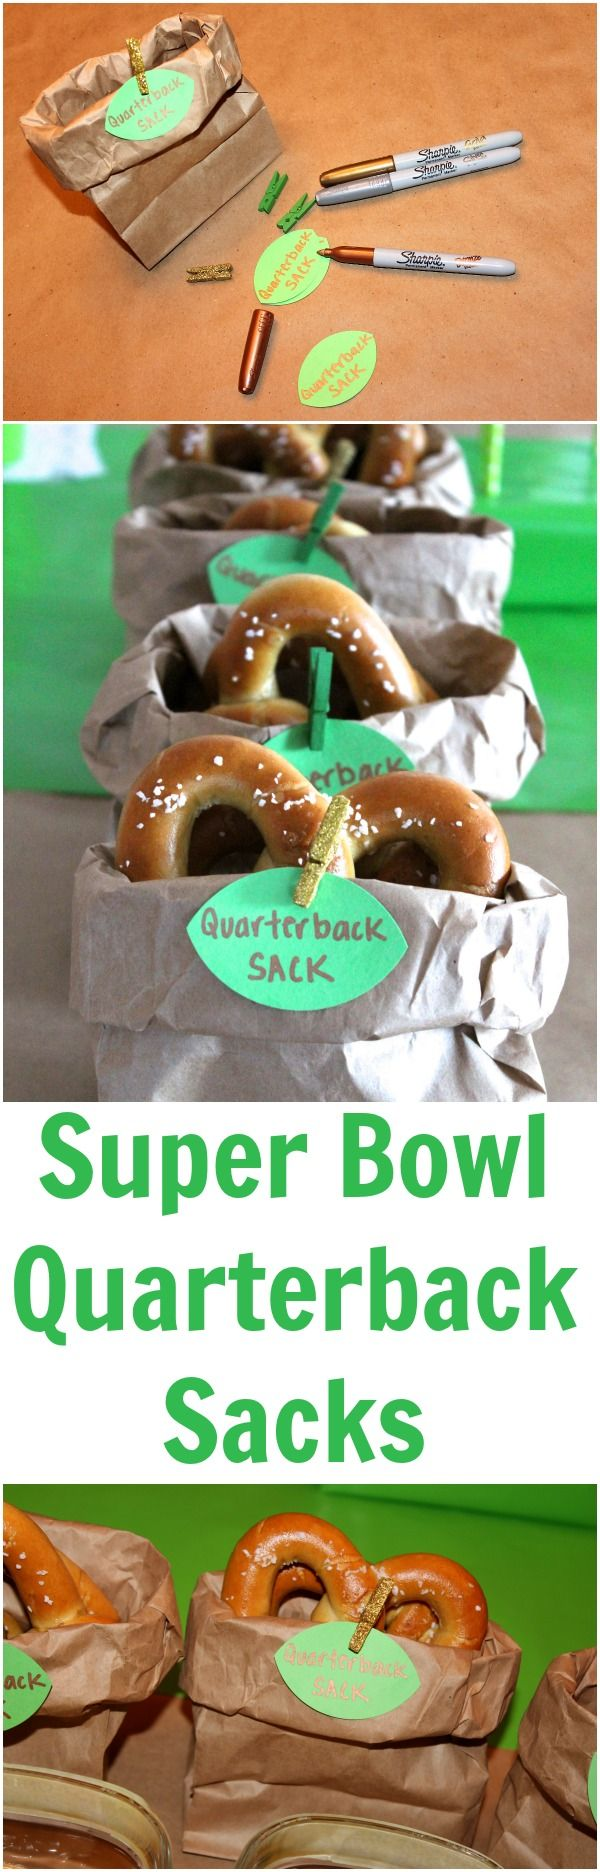 DIY Quarterback Sacks - fill with your snack of choice! www.weheartparties.com